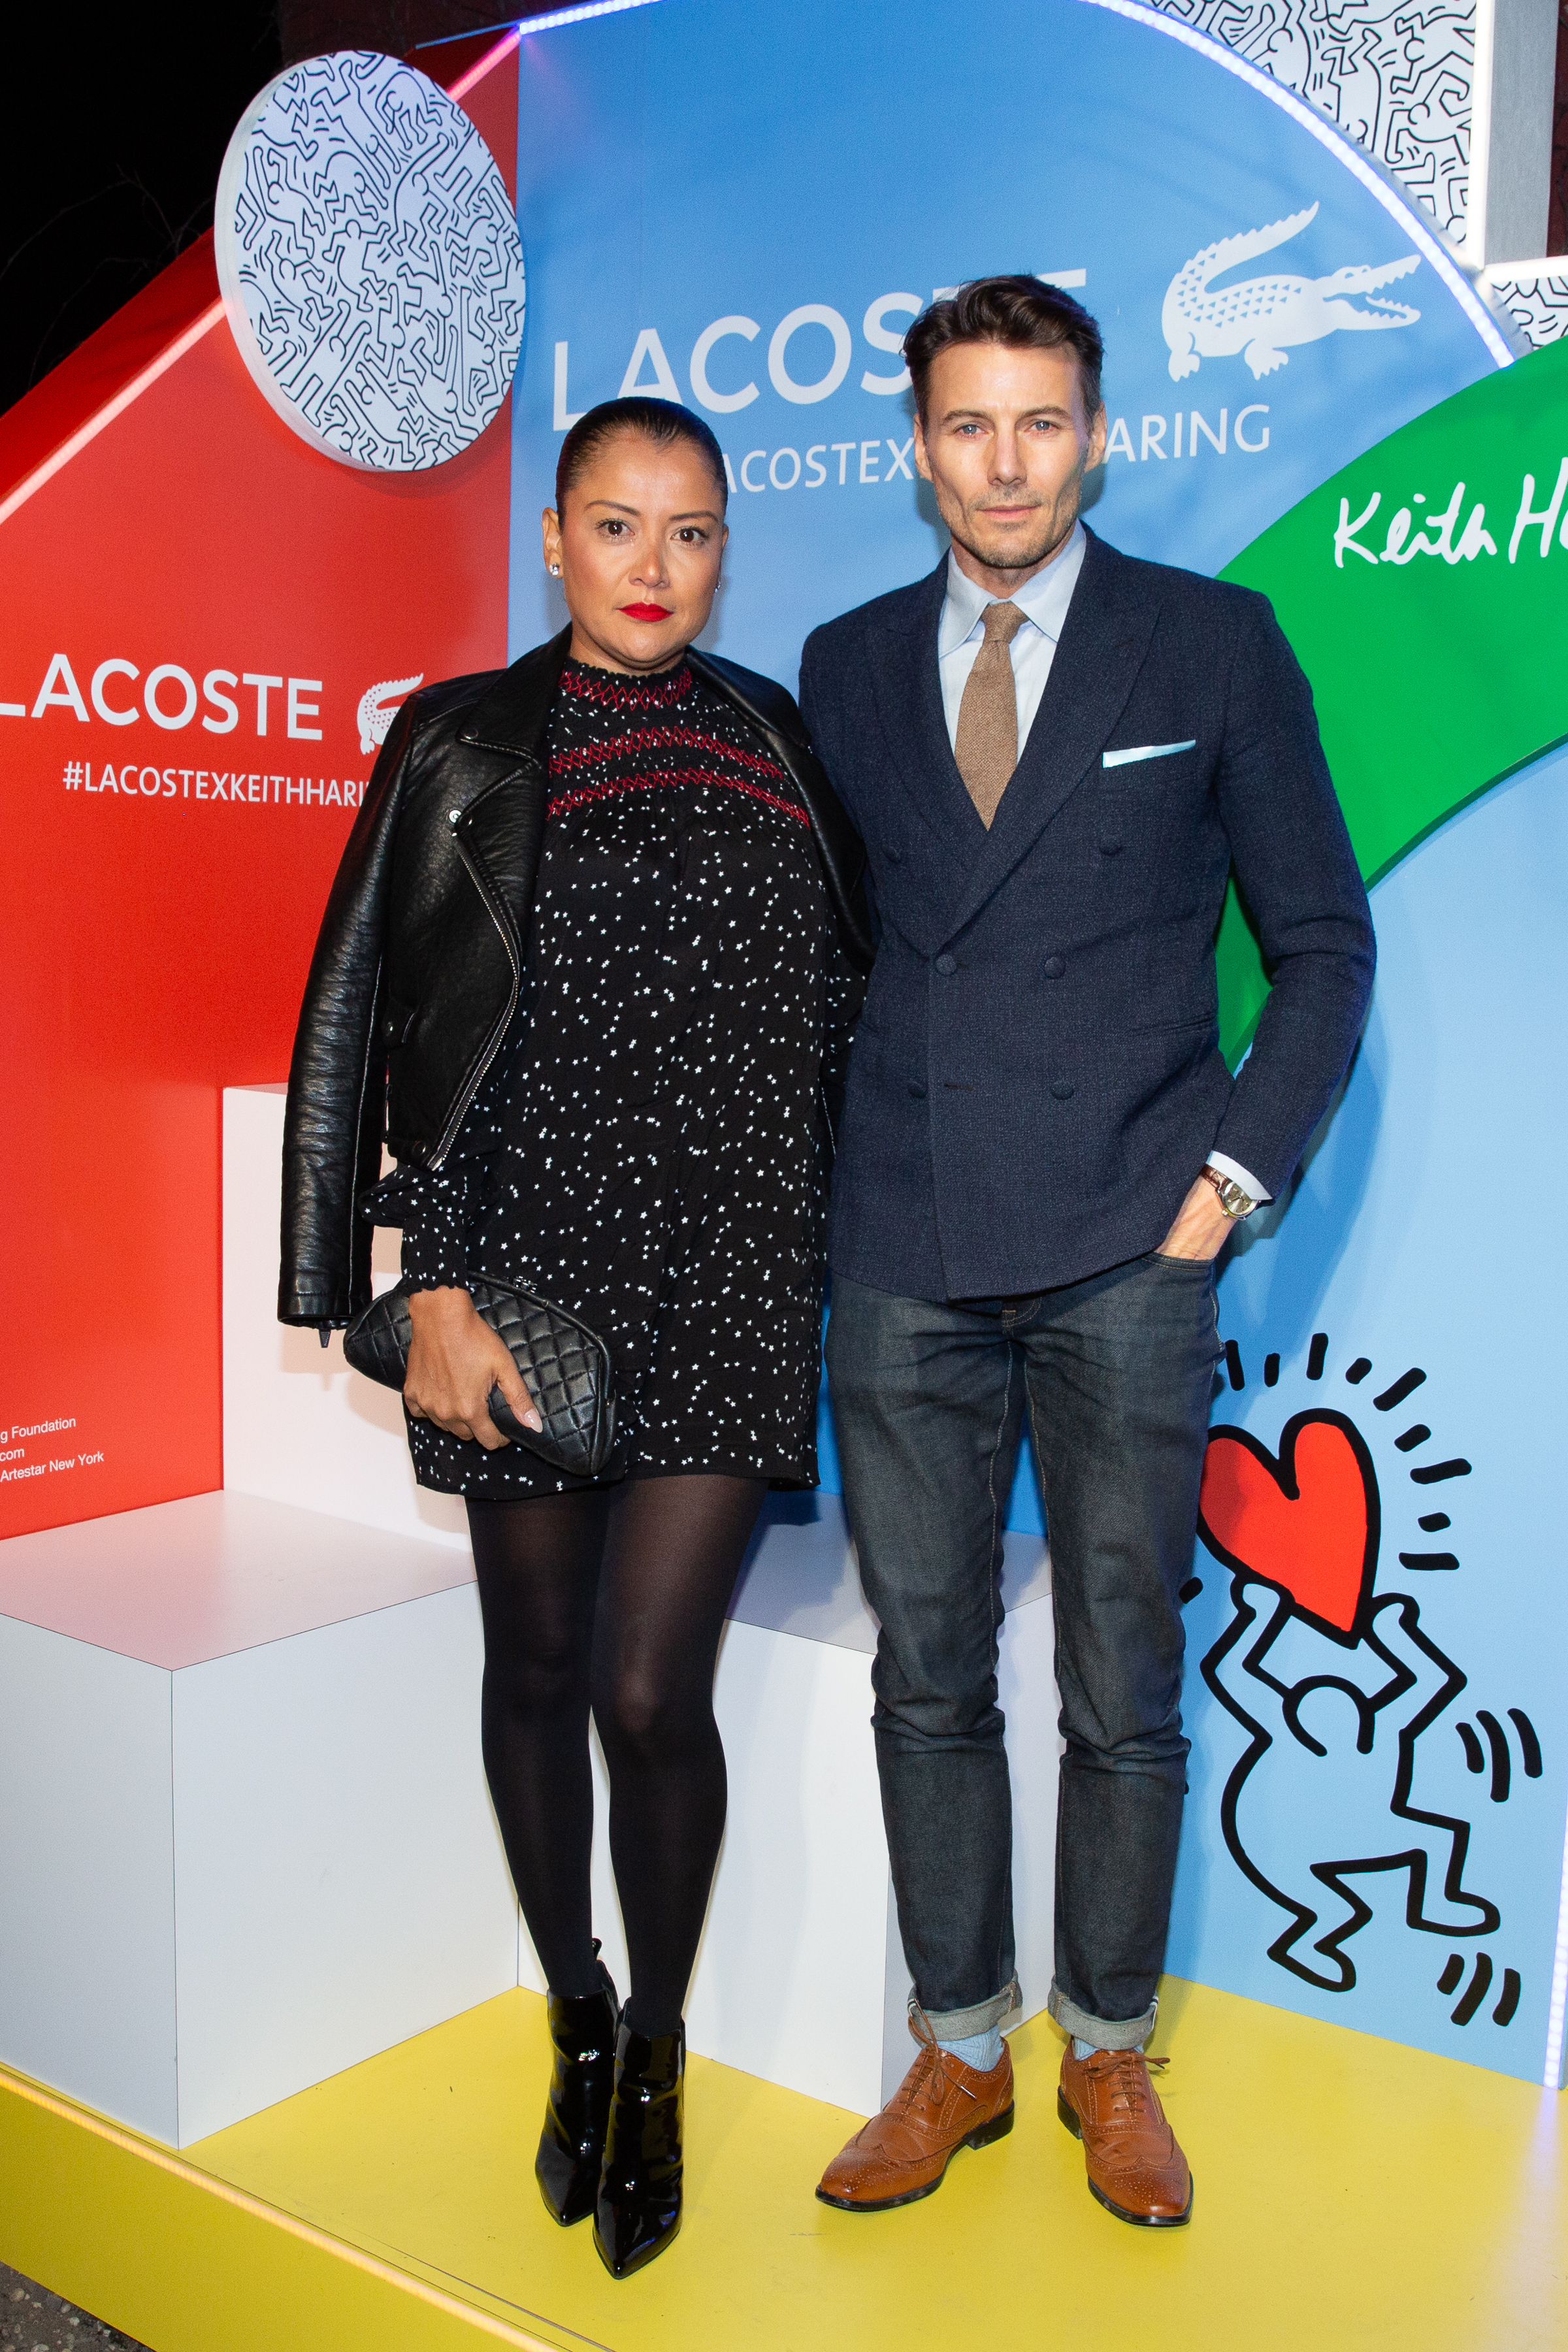 From Left To Right: Keytt Lundqvist, and Alex Lundqvist attend The Lacoste x Keith Haring Global Launch Party at Pioneer Works on Tuesday, March 26th, 2019. Photographed by Max Lakner/BFA.